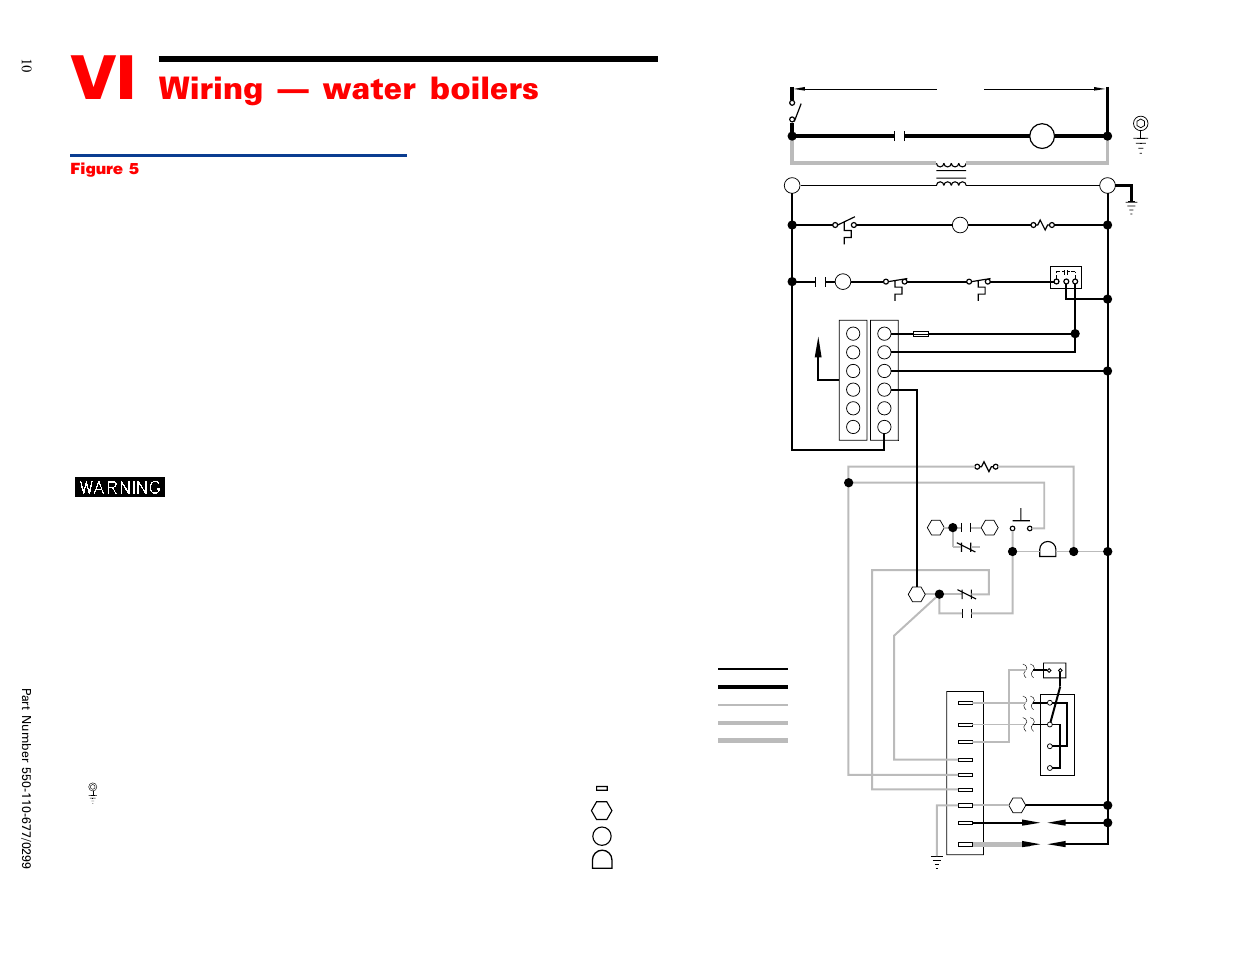 boilers wiring diagram and manuals intermediate origami dragon  water ladder weil